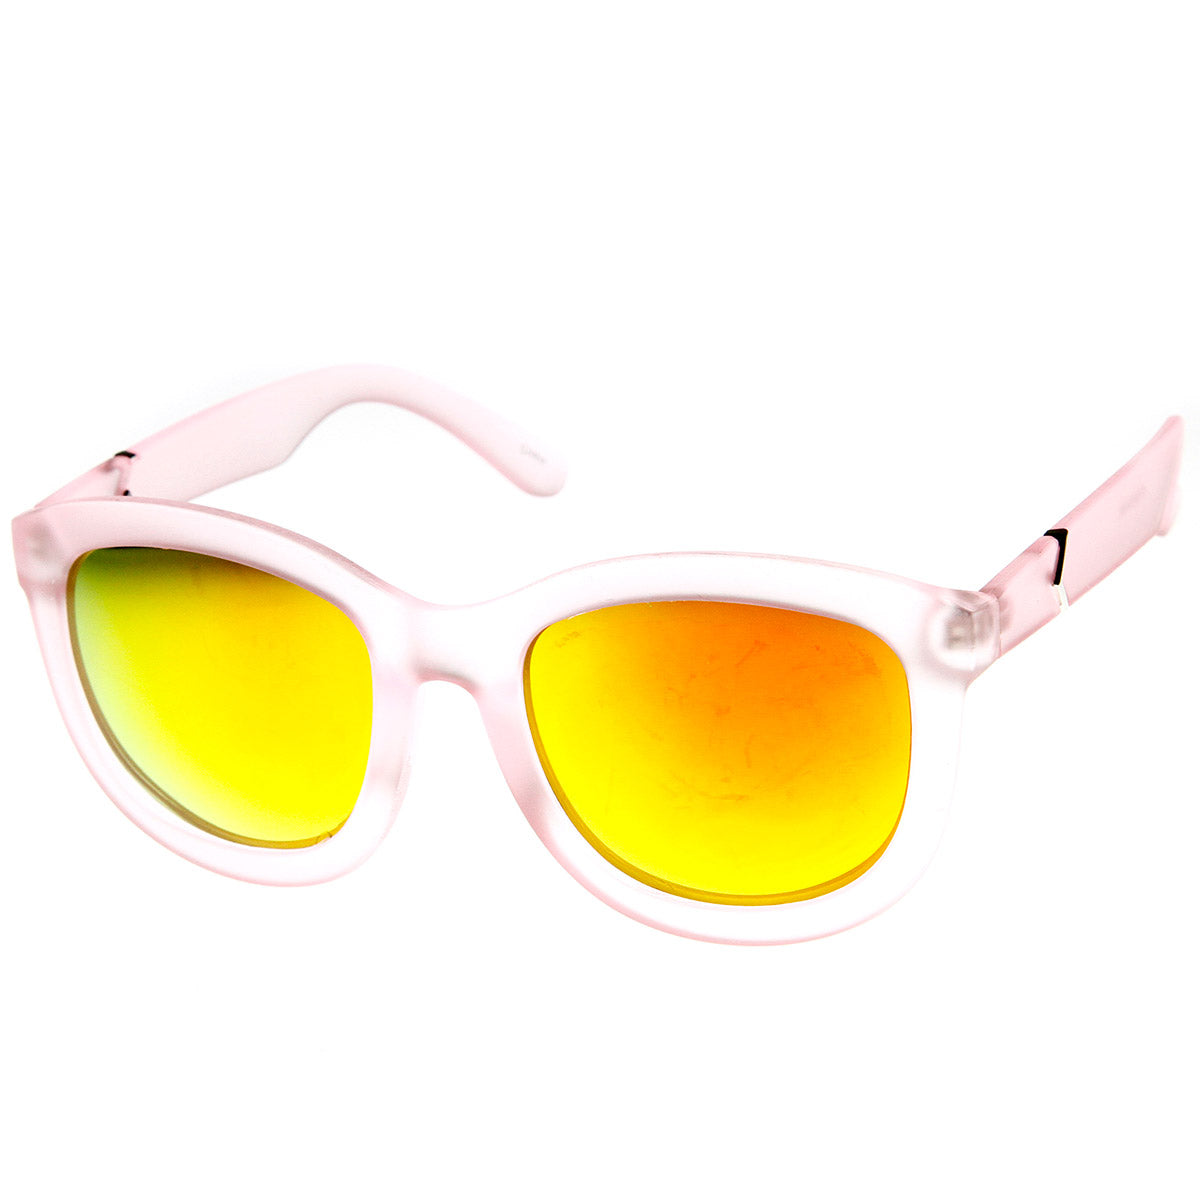 Smoke Sun Frosted Frame Color Mirror Lens Bold Oversized Horn Rimmed Sunglasses